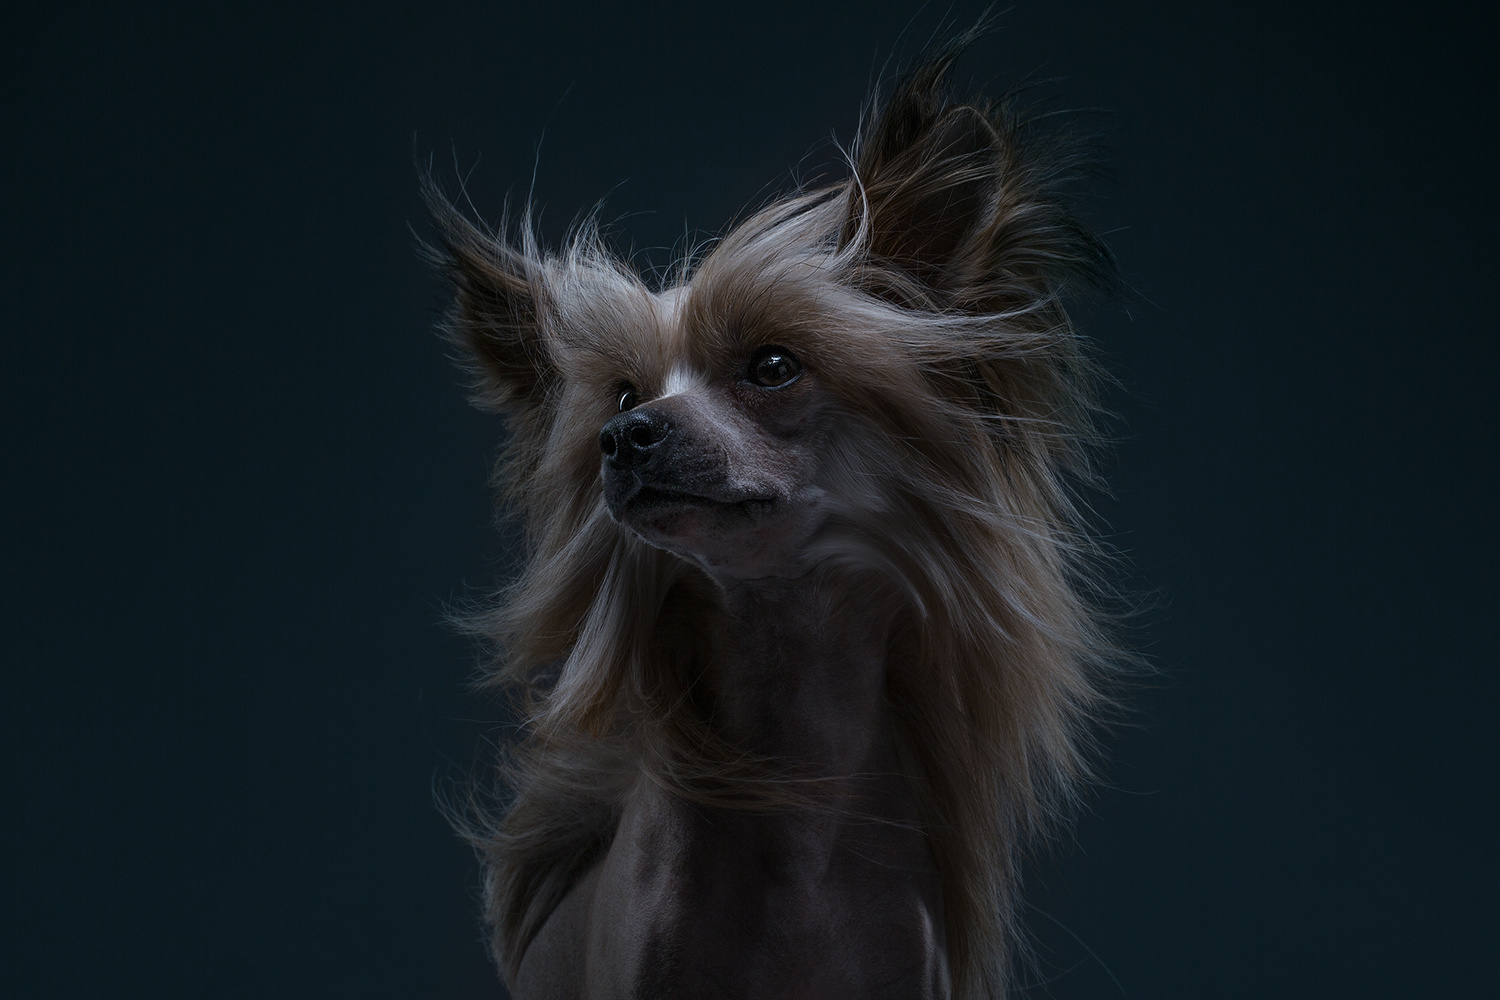 Elisey, the Chinese Crested Dog by Alexander Khokhlov